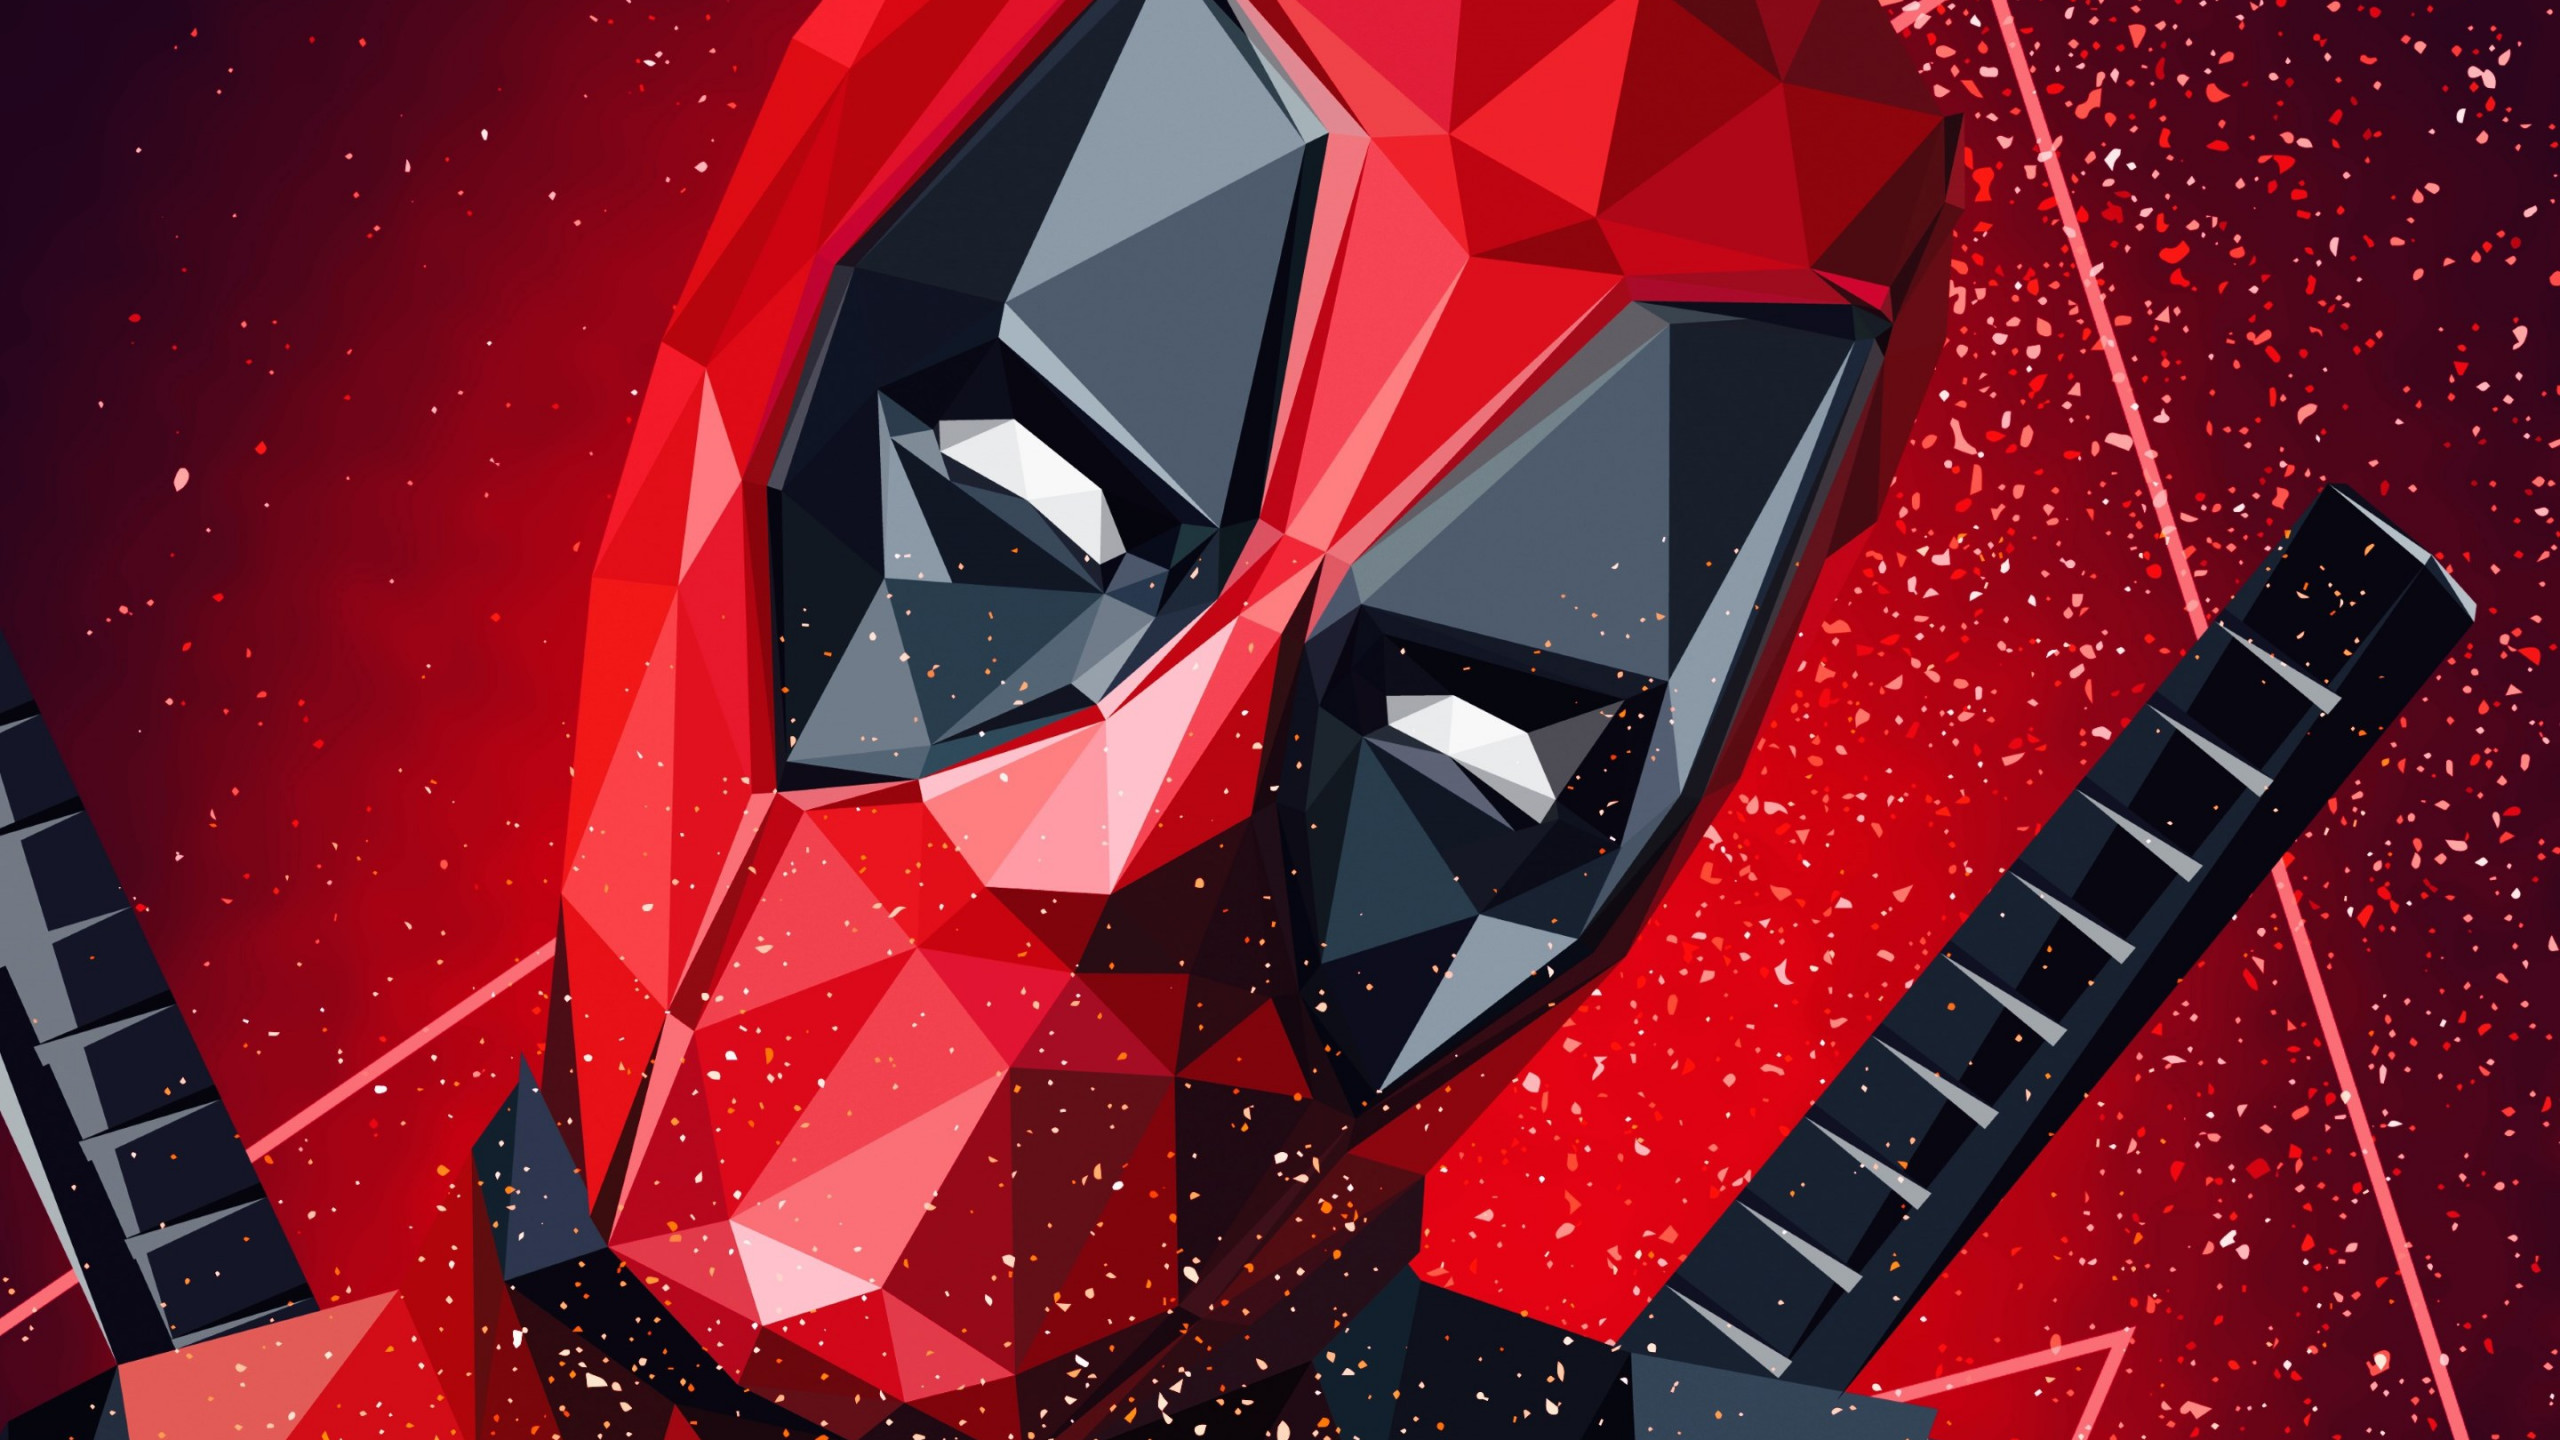 Deadpool digital art | 2560x1440 wallpaper